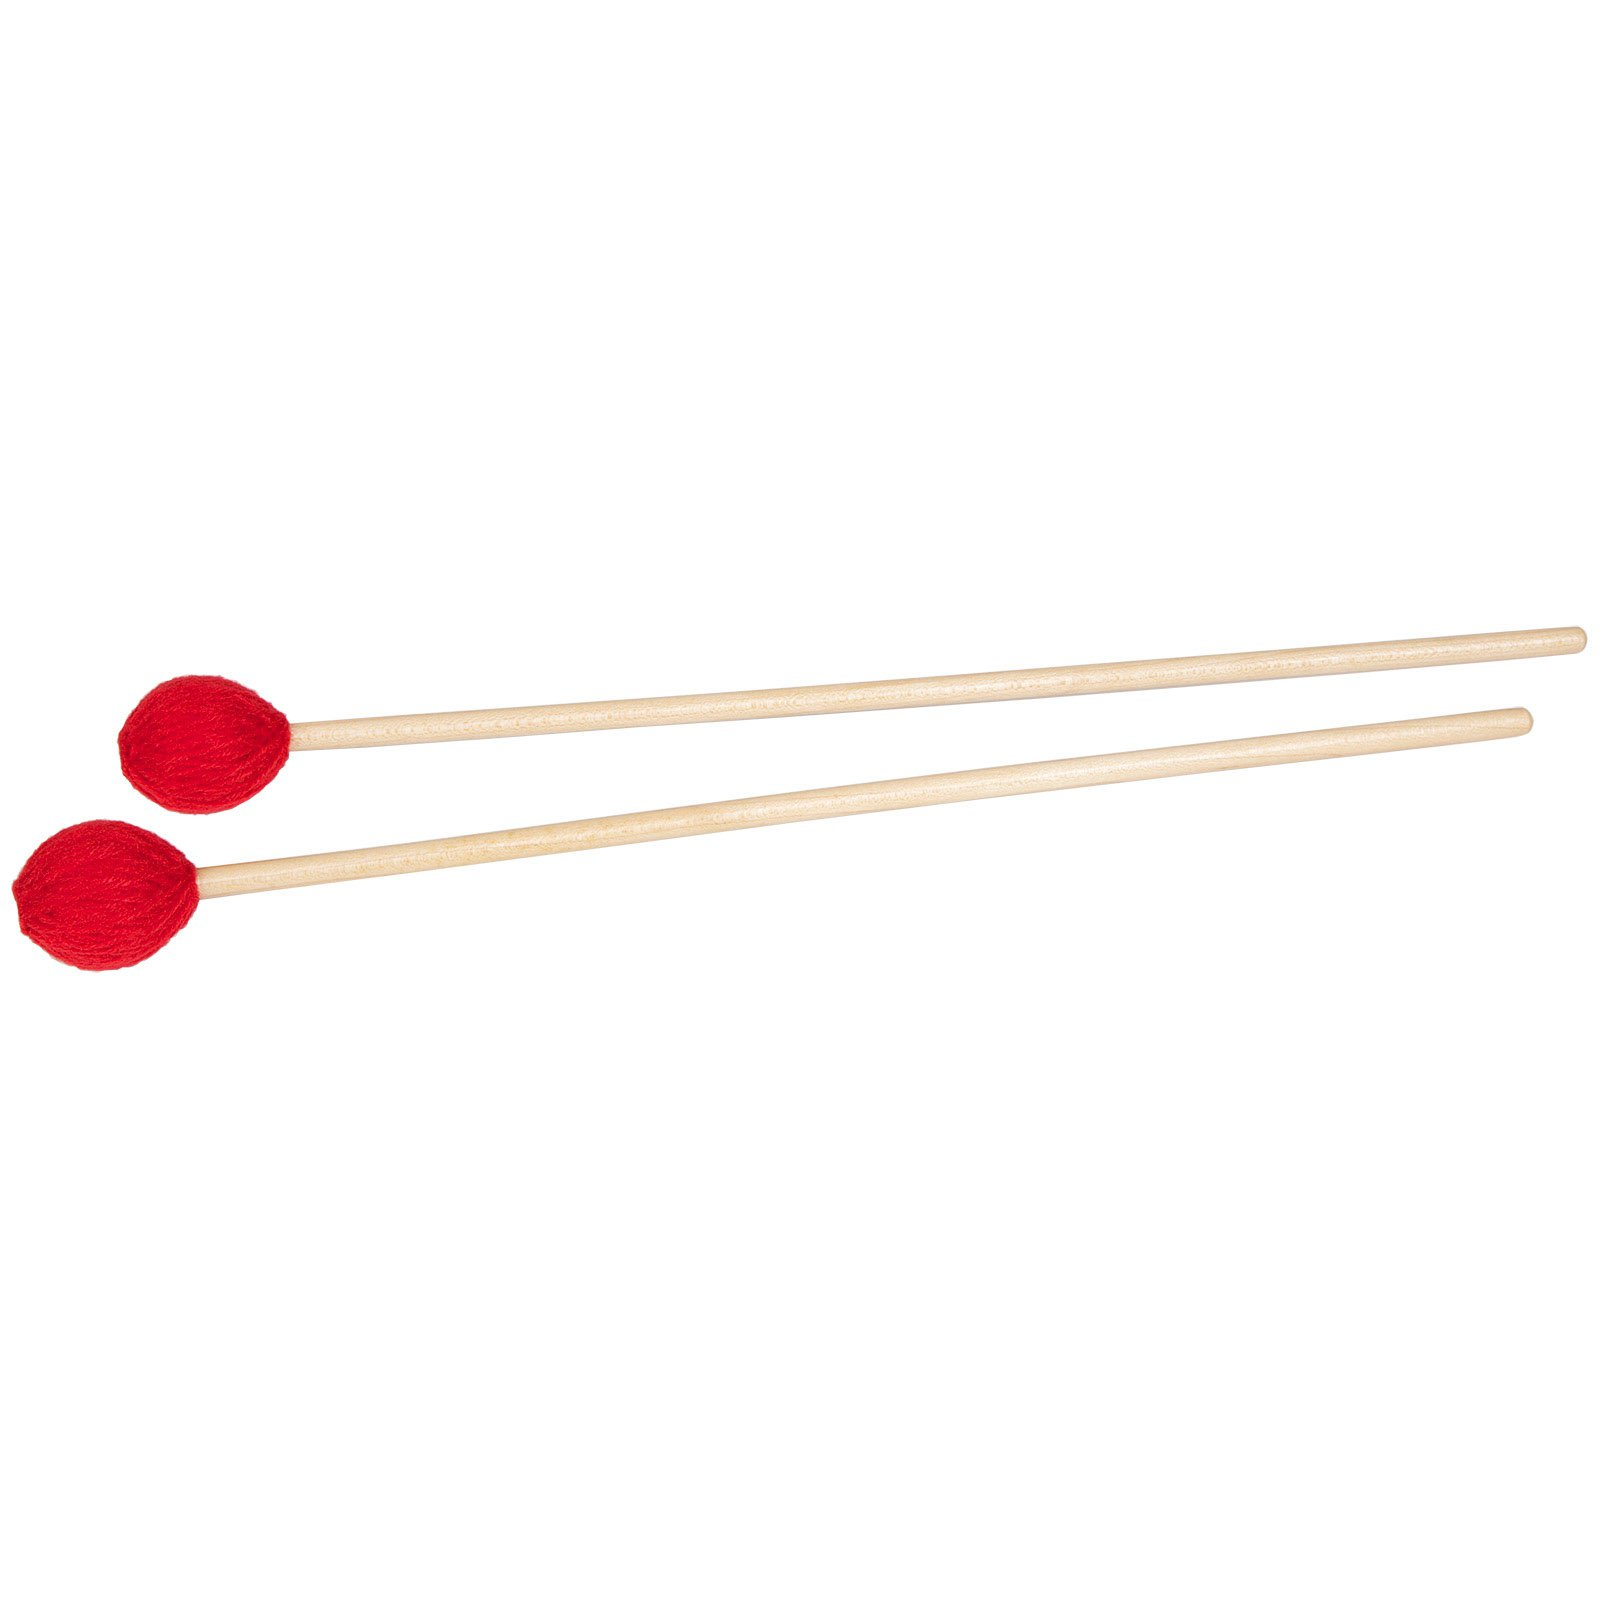 X8 Drums Soft Marimba Mallets by X8 Drums